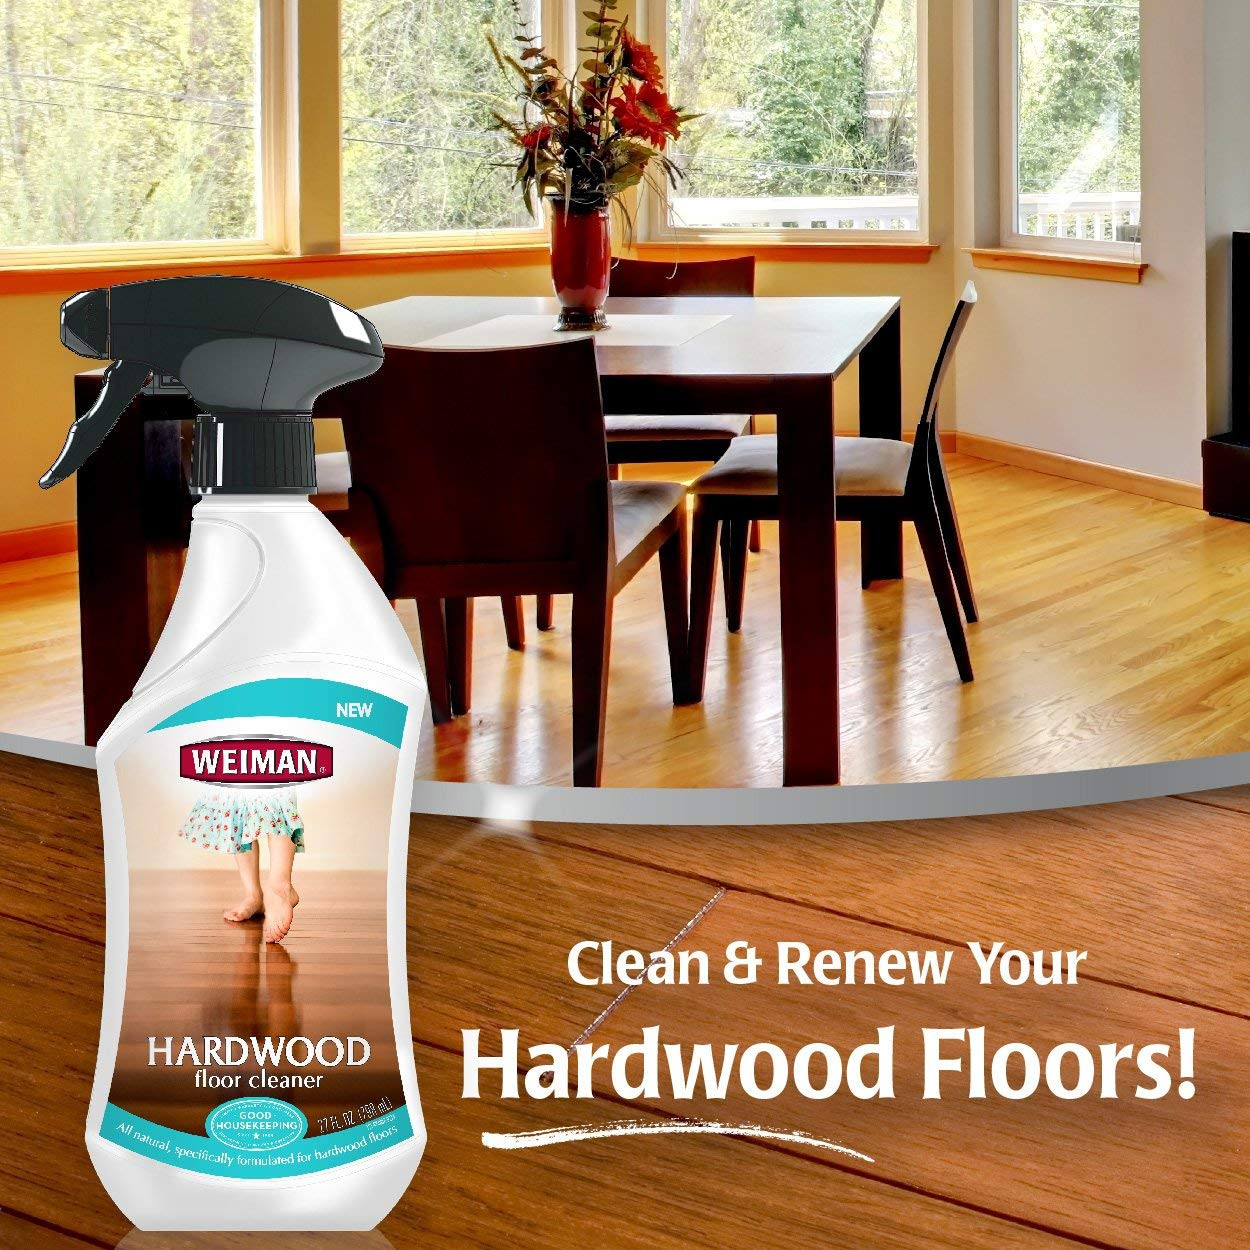 refinished hardwood floors drying time of amazon com weiman hardwood floor cleaner surface safe no harsh for amazon com weiman hardwood floor cleaner surface safe no harsh scent safe for use around kids and pets residue free 27 oz trigger home kitchen